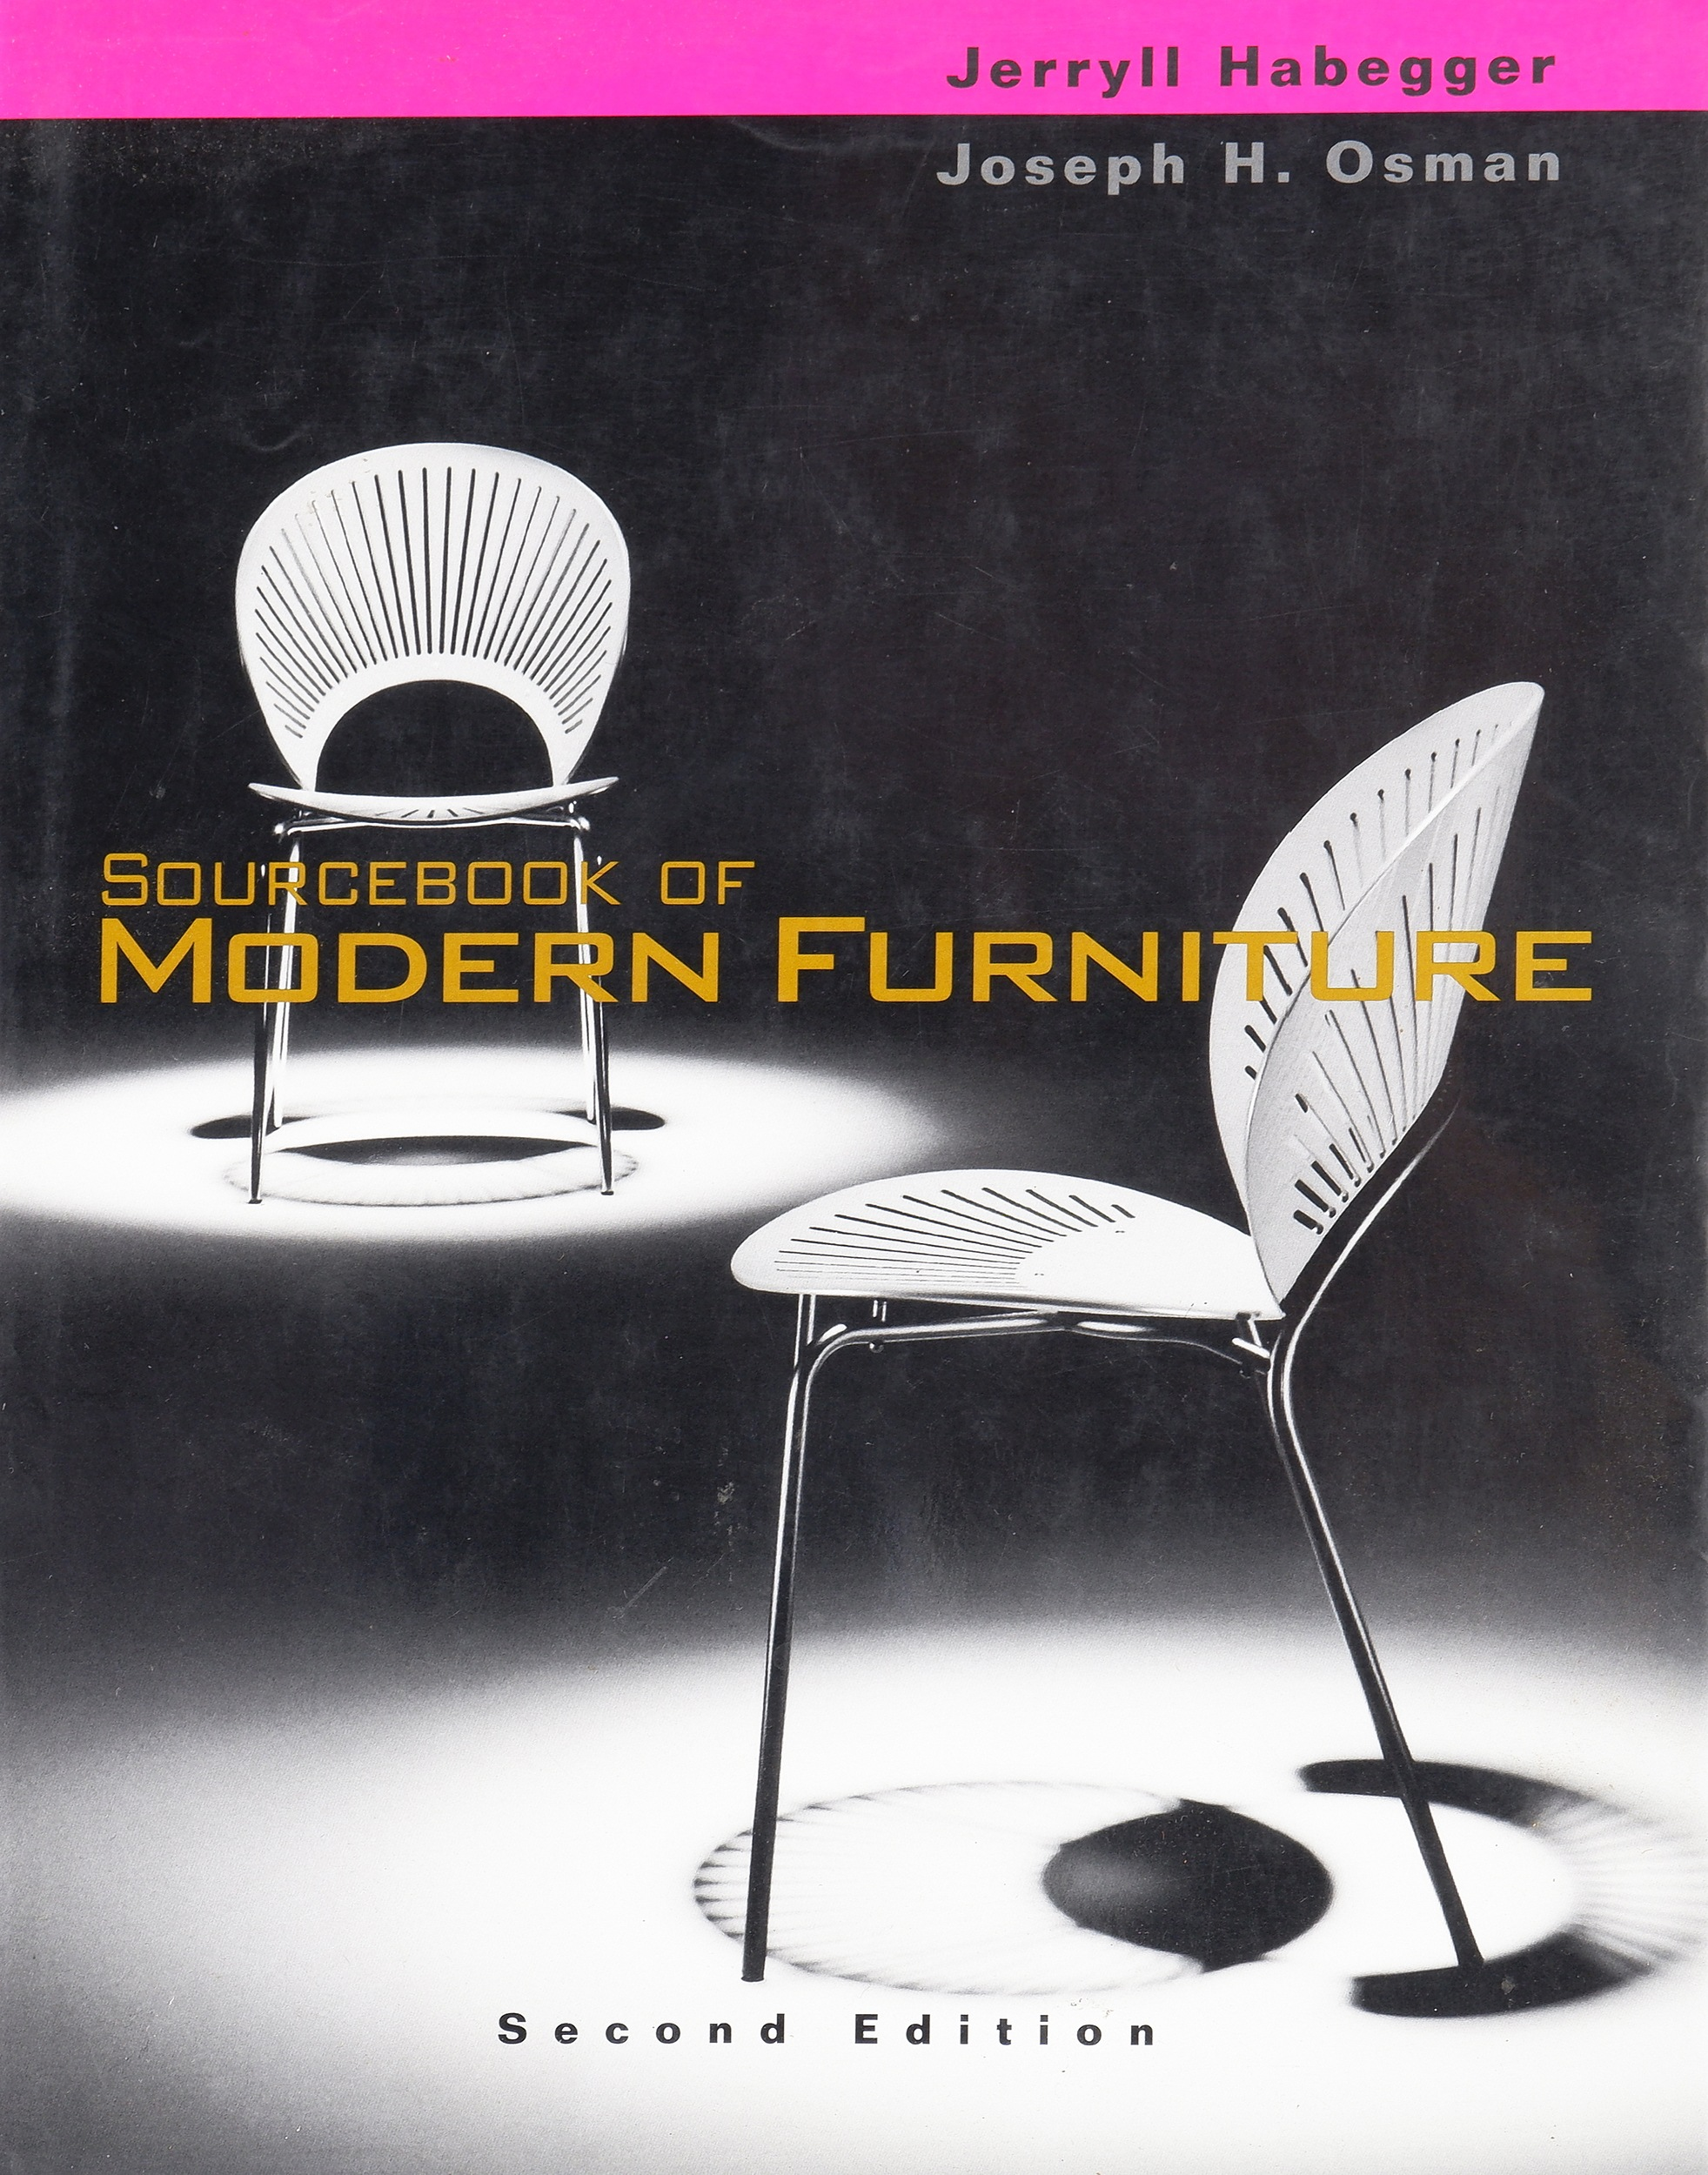 'Jerryll Habegger & Joseph H Osman, Sourcebook of Modern Furniture, Second edition'